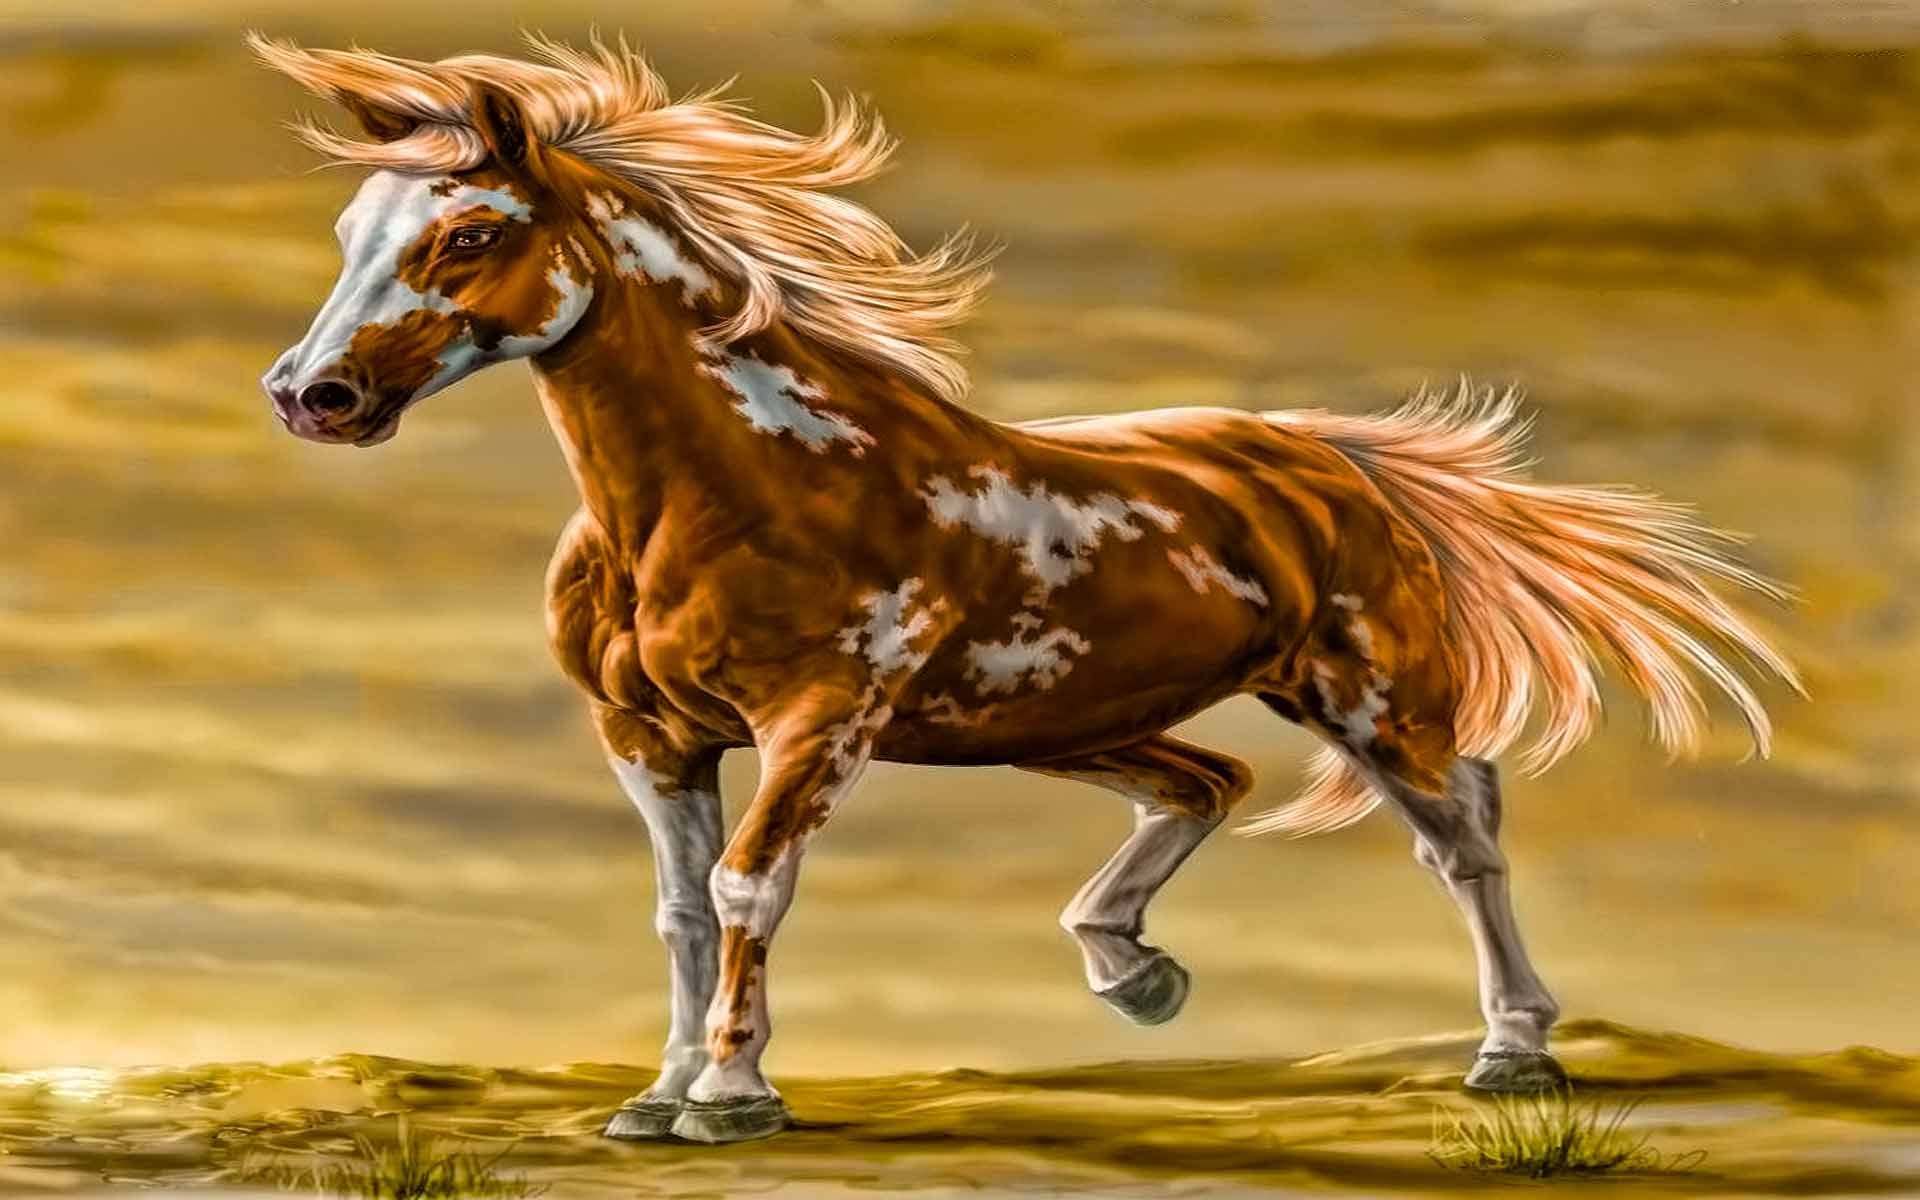 Paint Horse Wallpapers - Wallpaper Cave